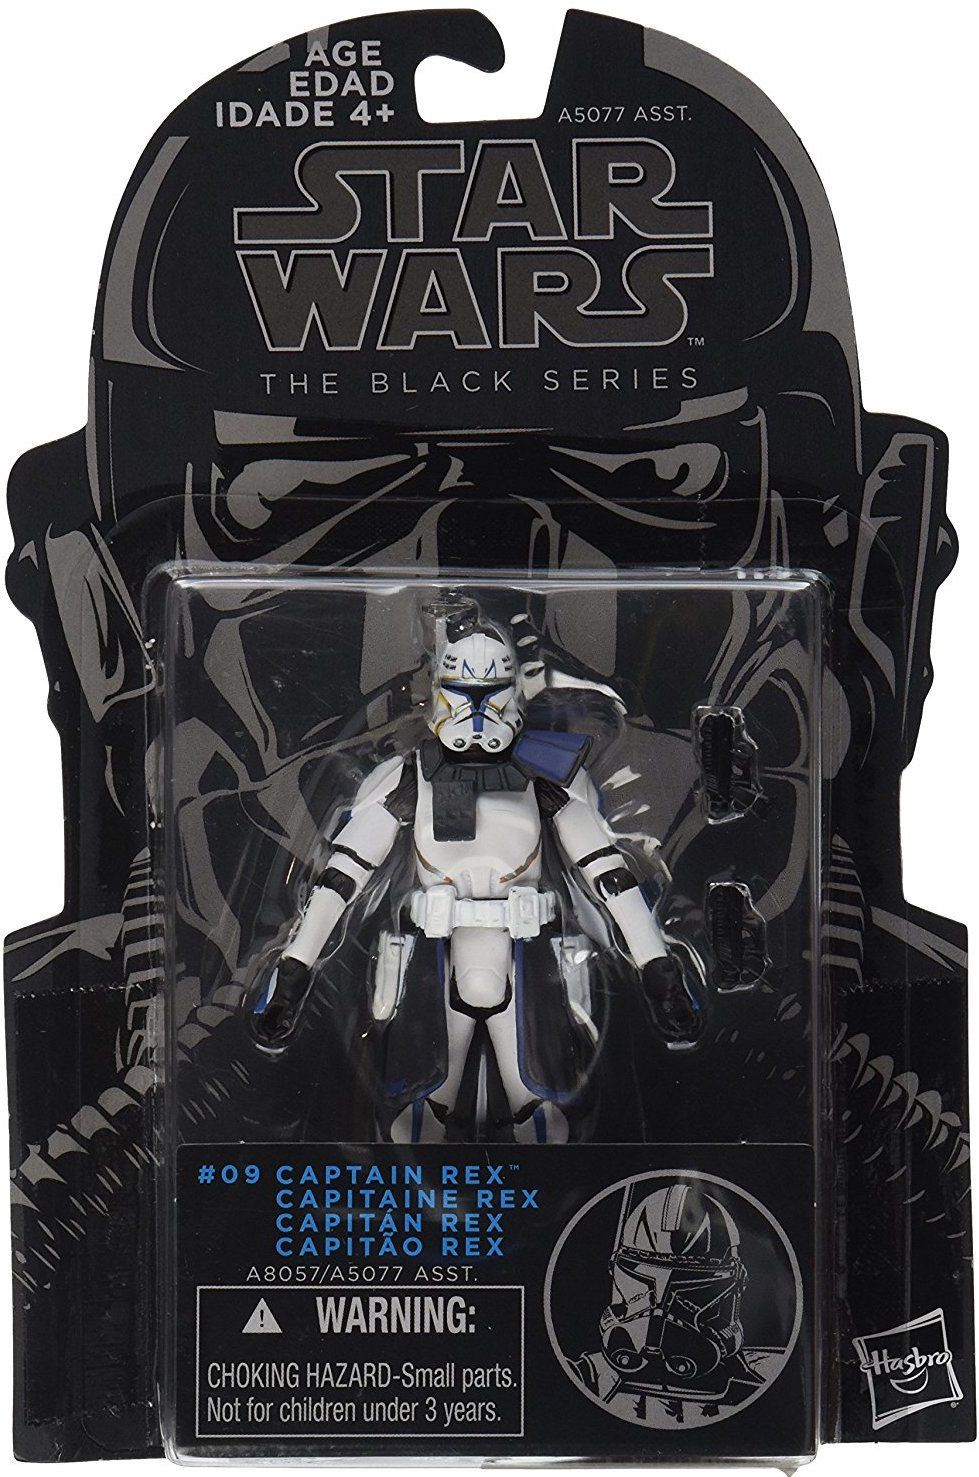 """Capitaine Rex #09 2014 Star Wars The Black Series 3.75/"""" New Comme neuf on Card"""